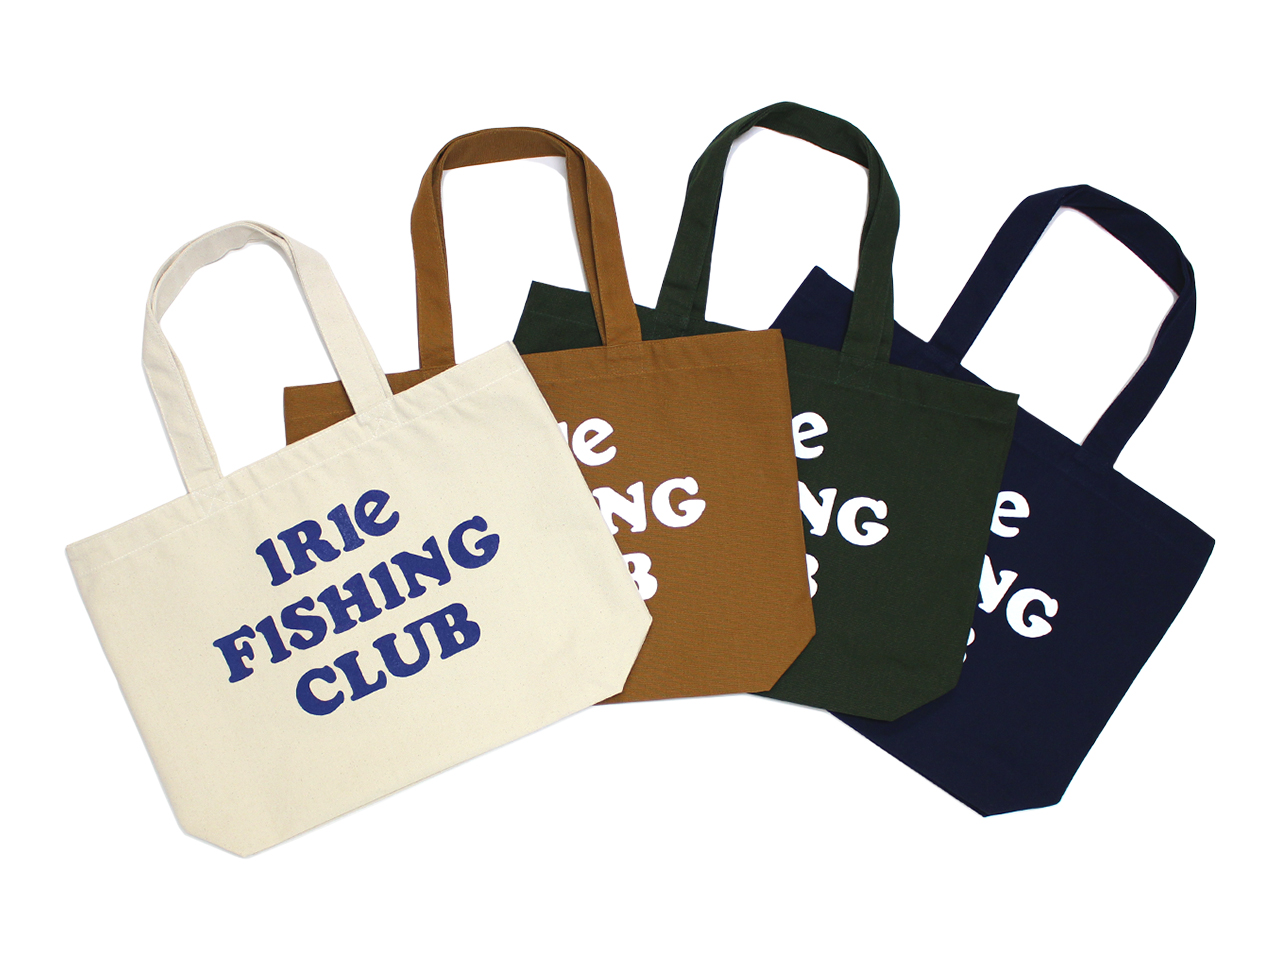 IFC LOGO TOTE BAG - IRIE FISHING CLUB